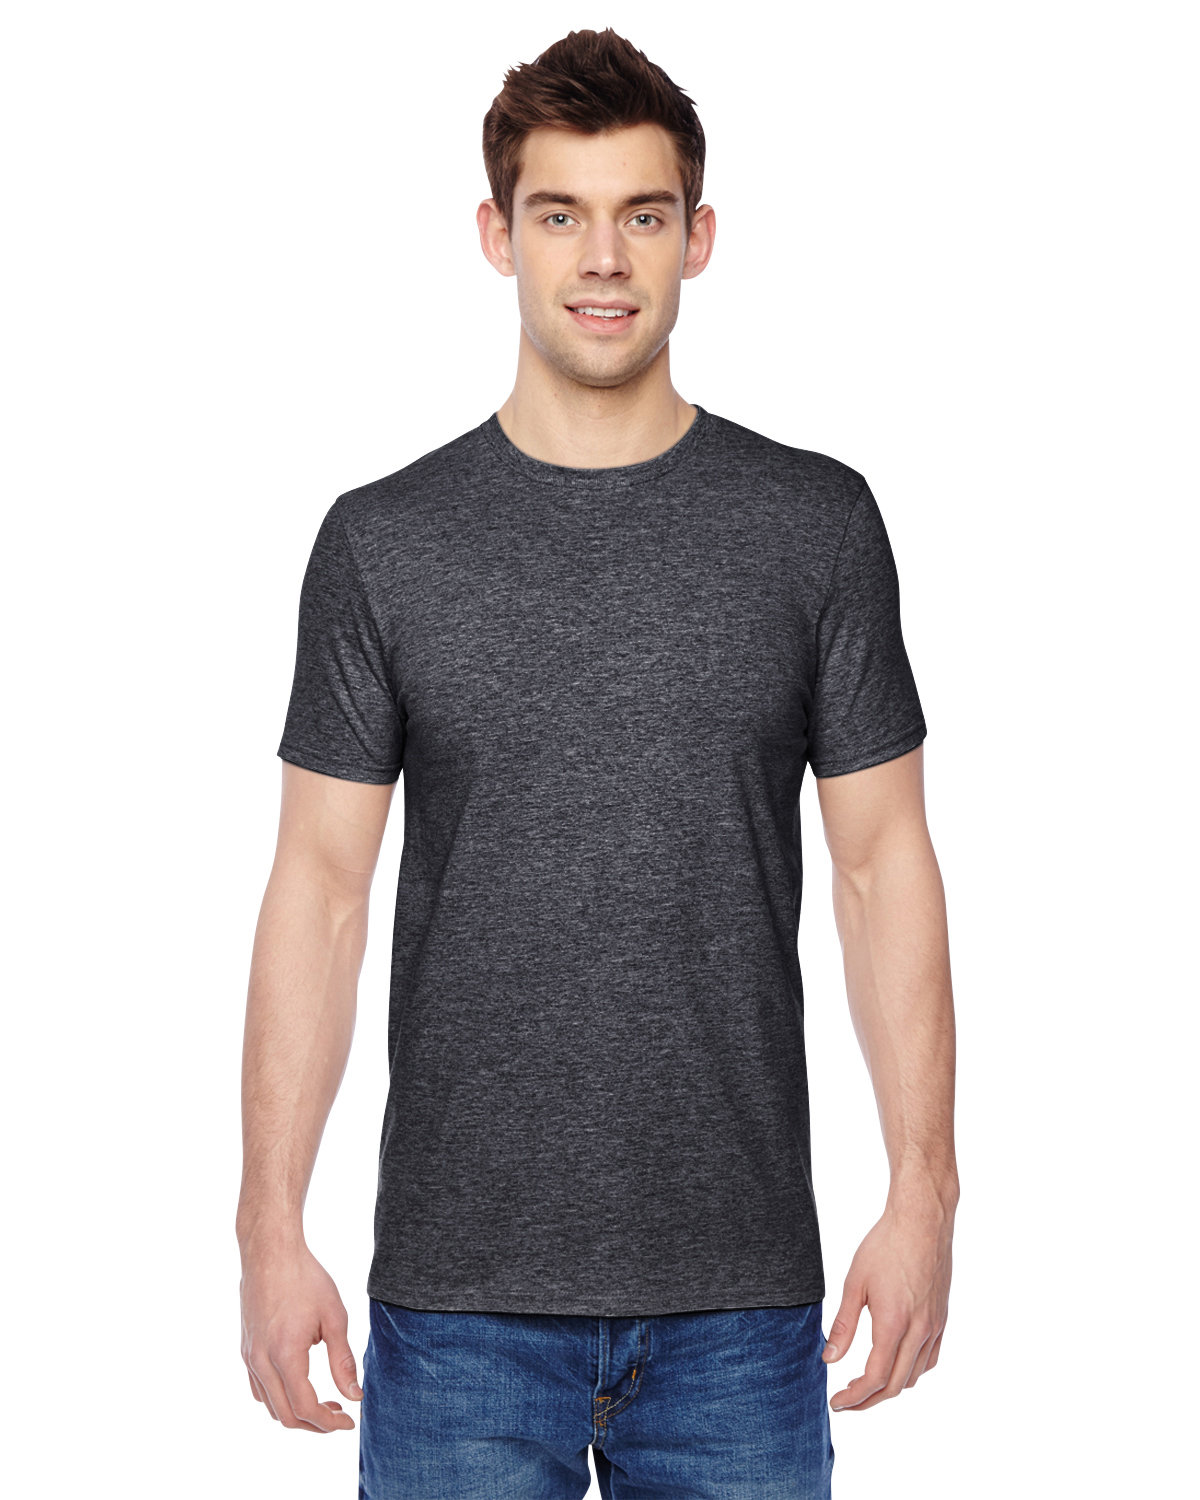 Fruit of the Loom Adult Sofspun® Jersey Crew T-Shirt CHARCOAL HEATHER